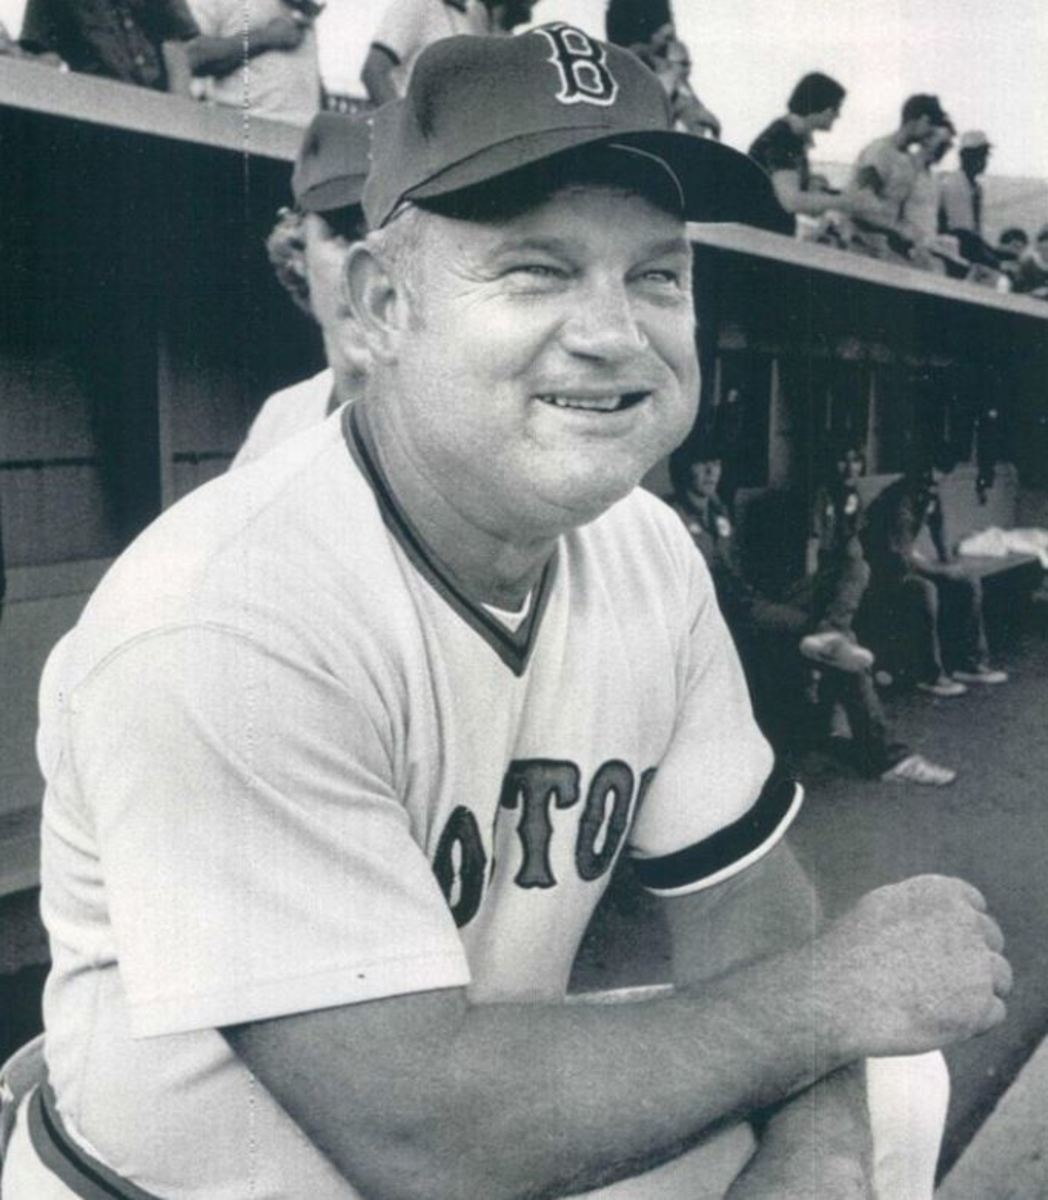 Third Base Coach Don Zimmer. He later became the Sox manager.